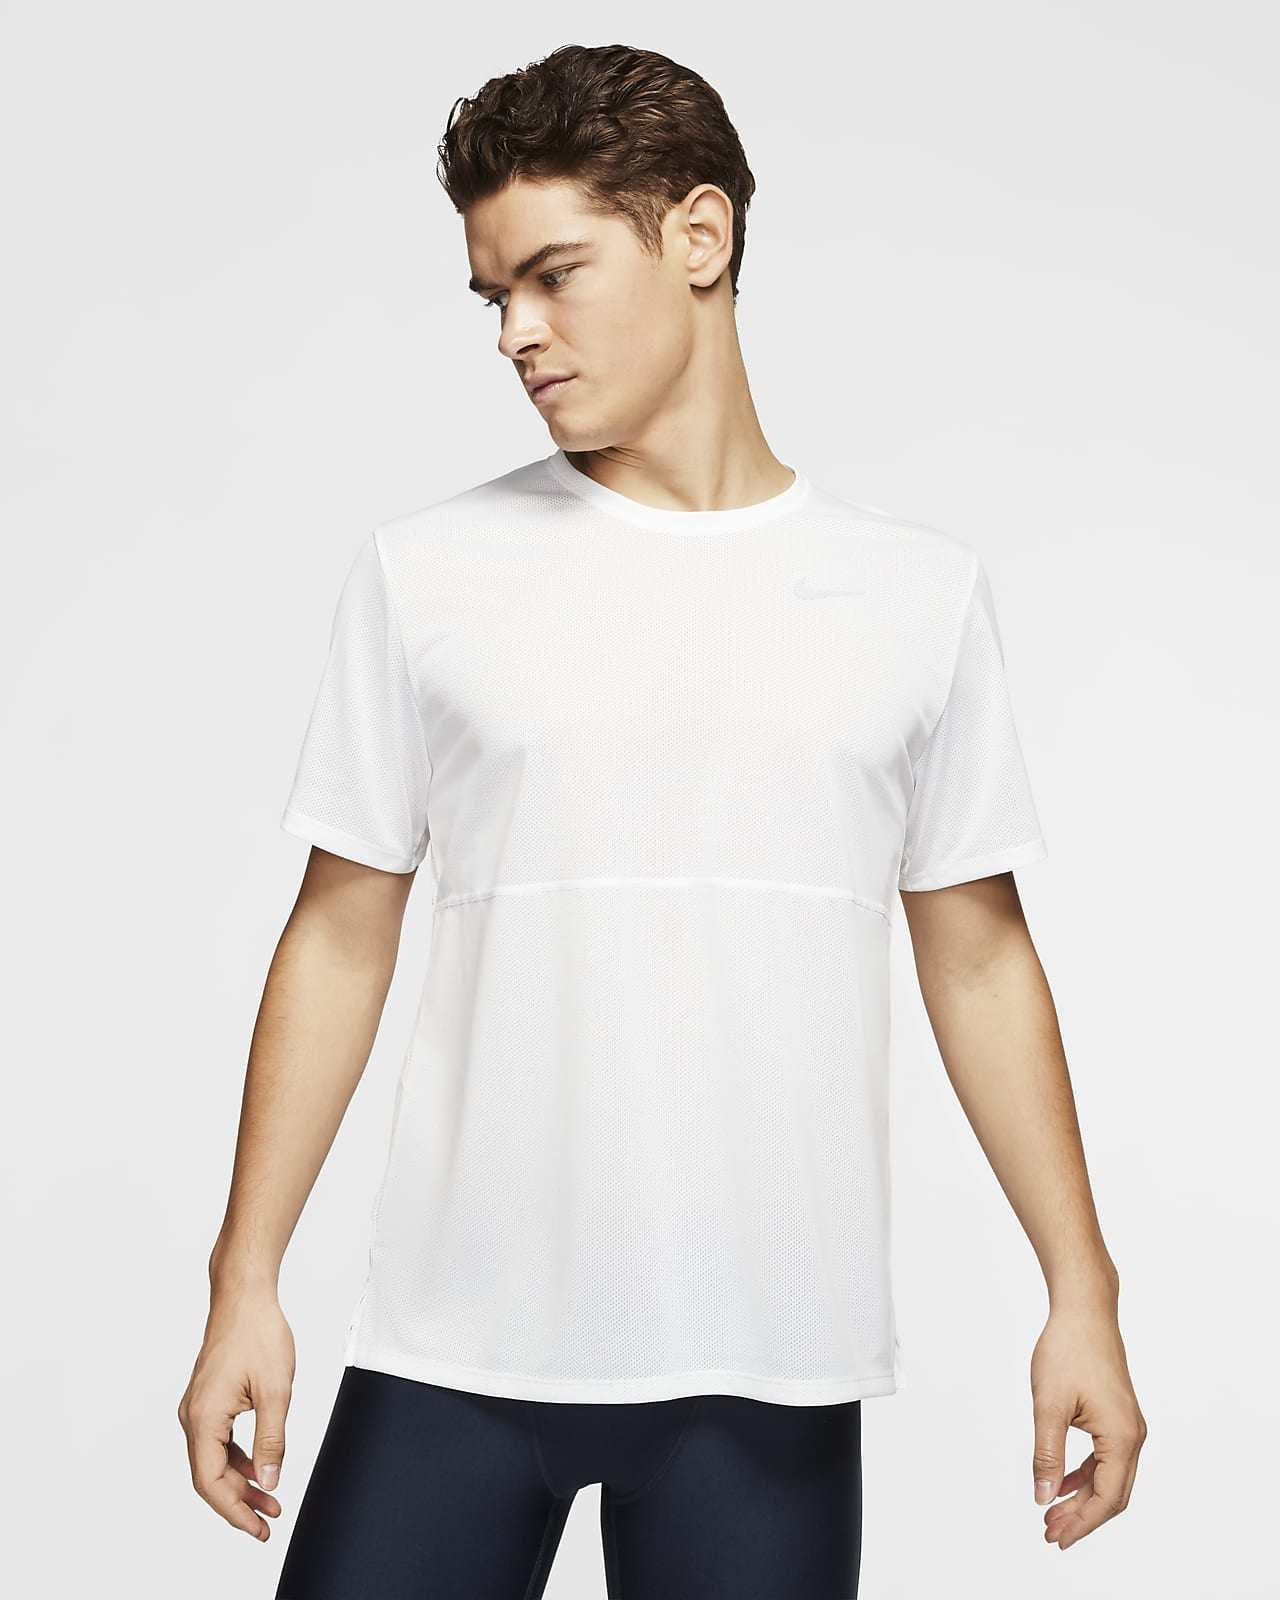 Nike Breathe Men's Running Top